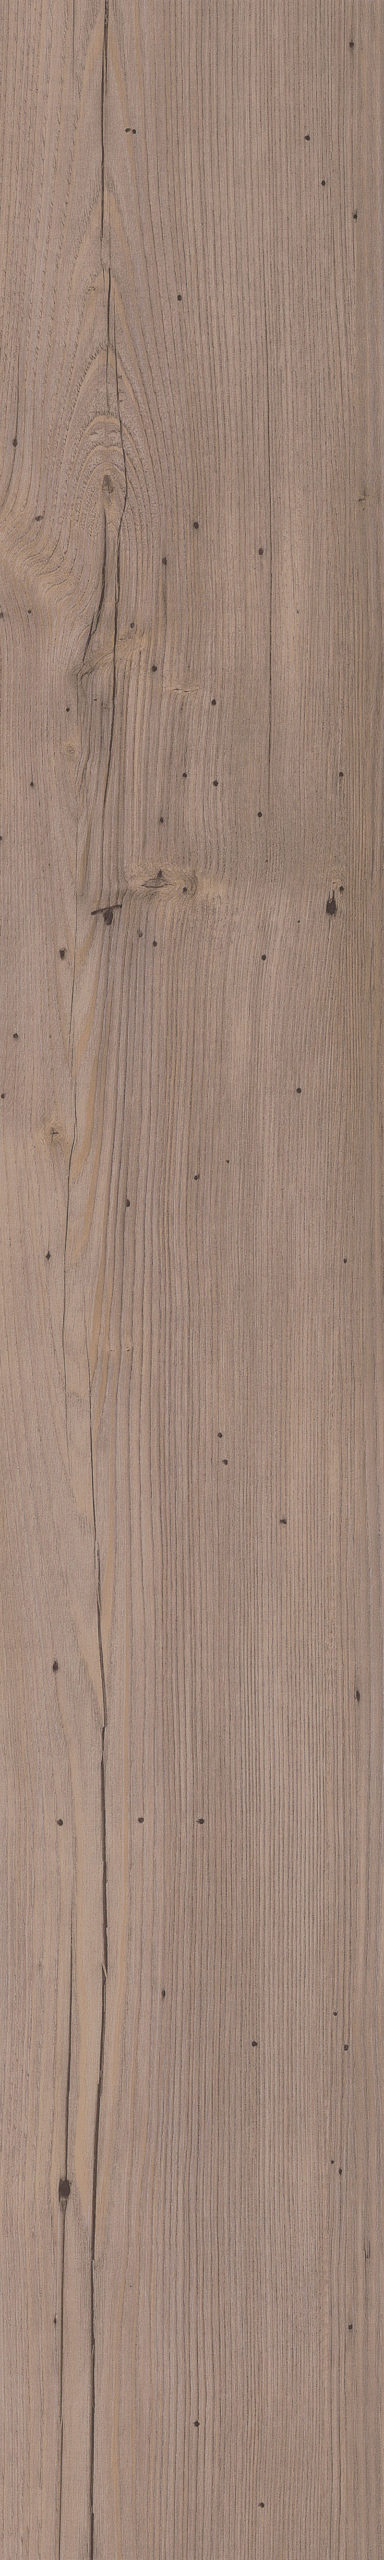 Authentic Plank Ferne